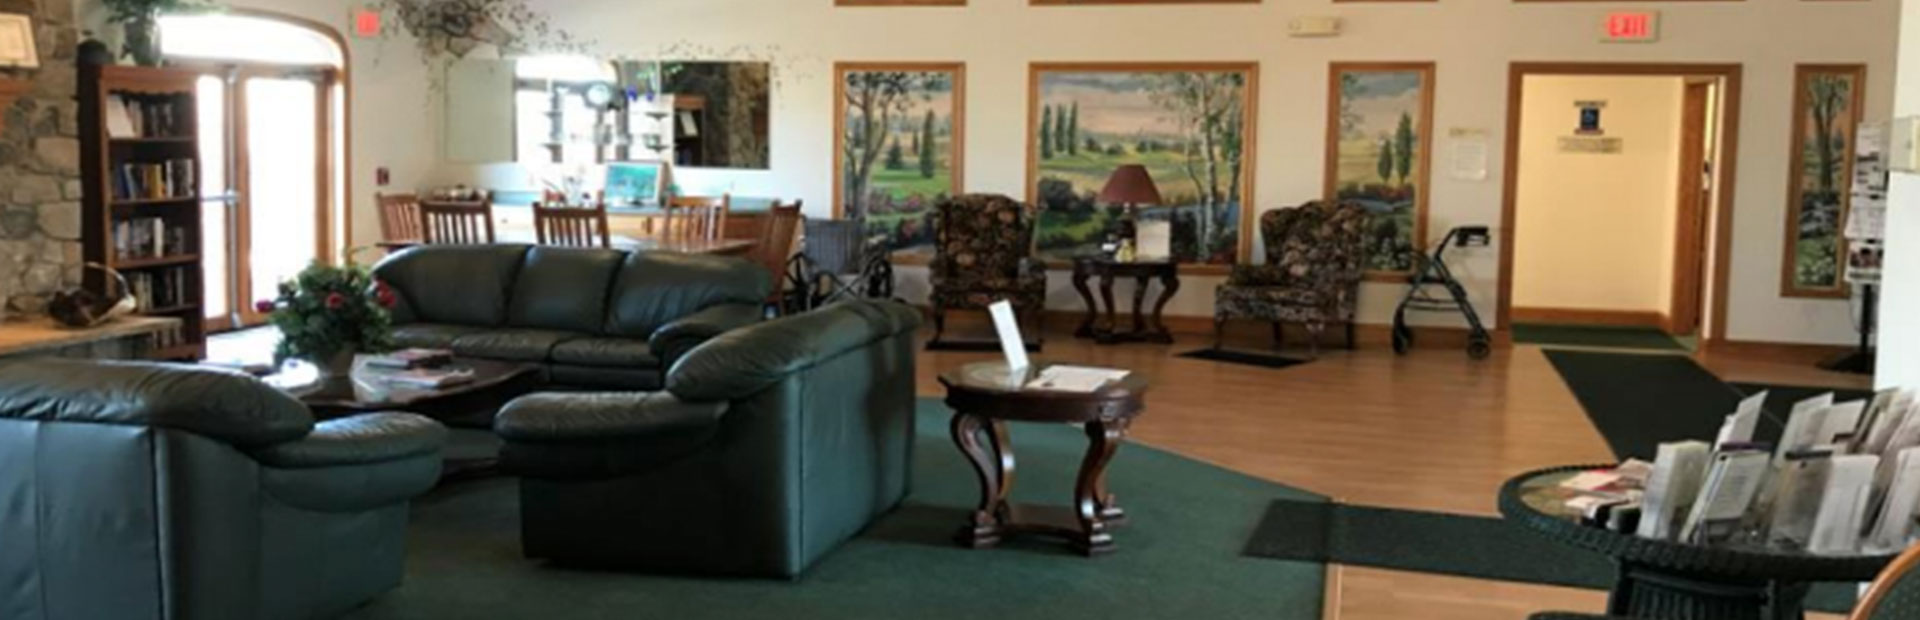 Gateway-clubhouse-interior-great-room